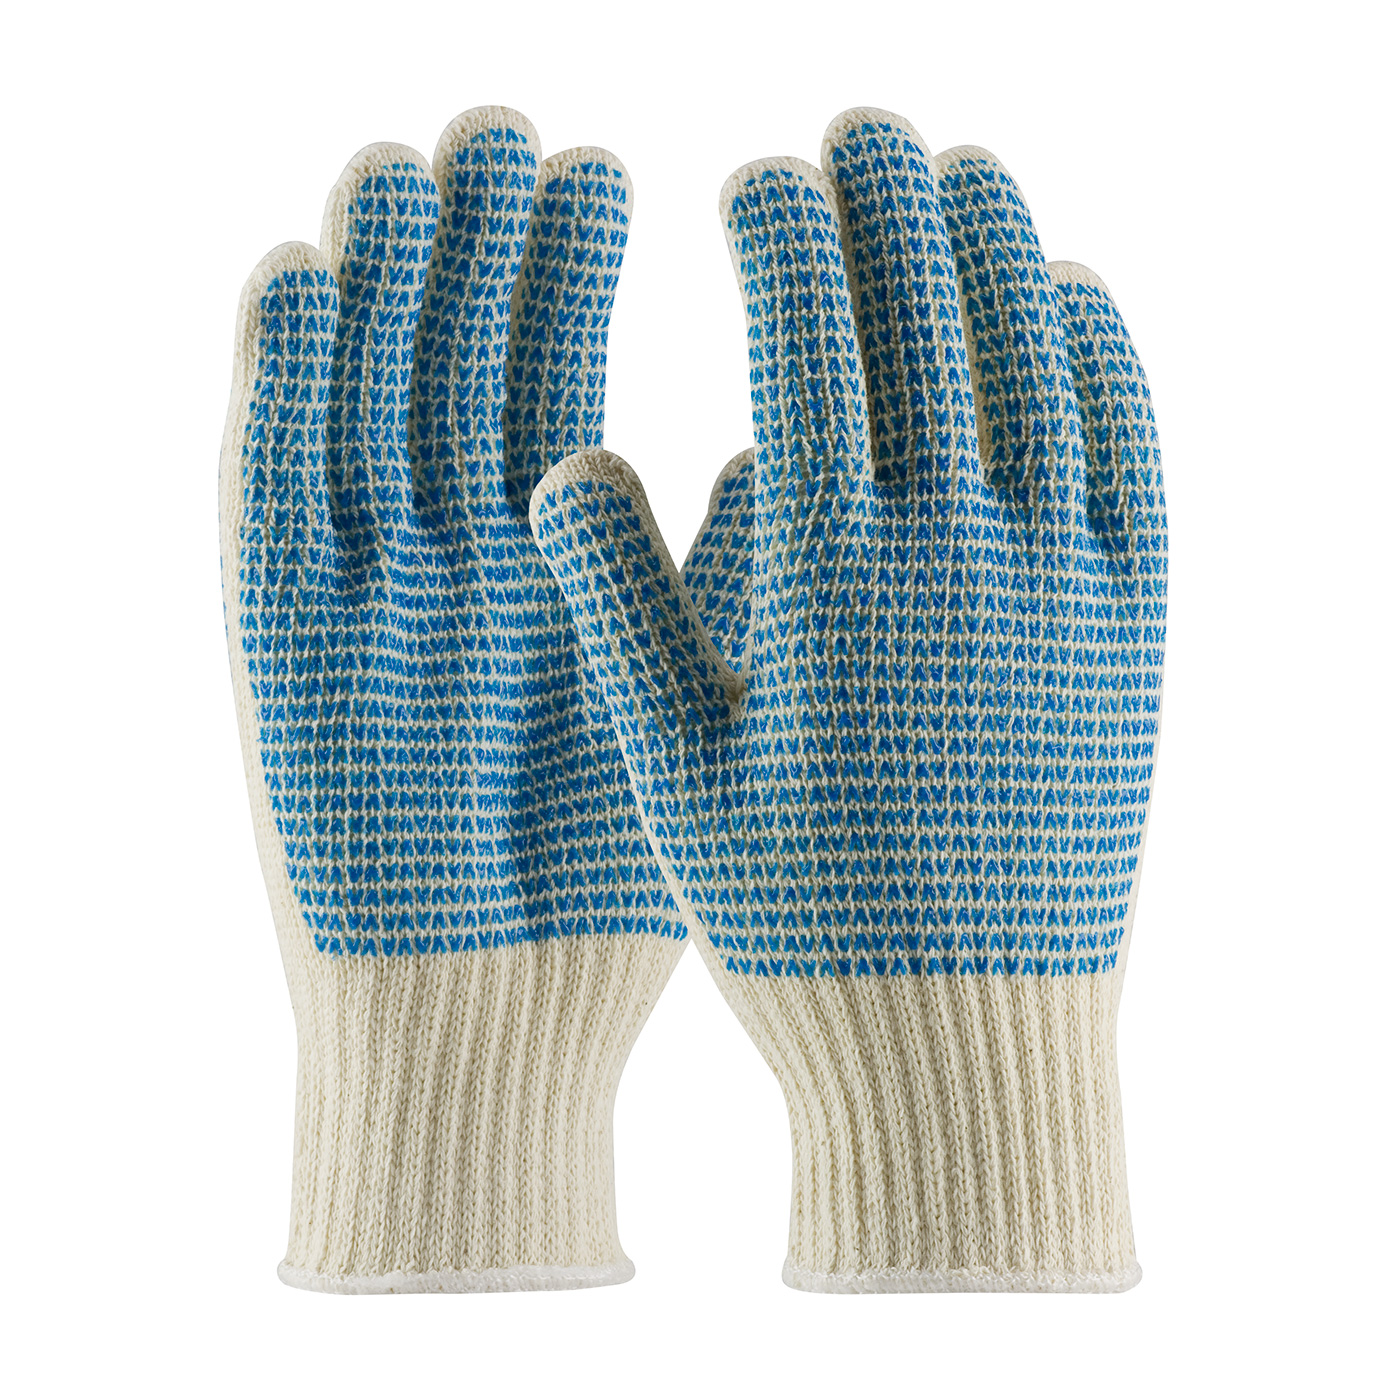 PIP® Seamless Knit Cotton / Polyester Glove with Double-Sided PVC `V` Pattern Grip - Heavy Weight #36-110VV